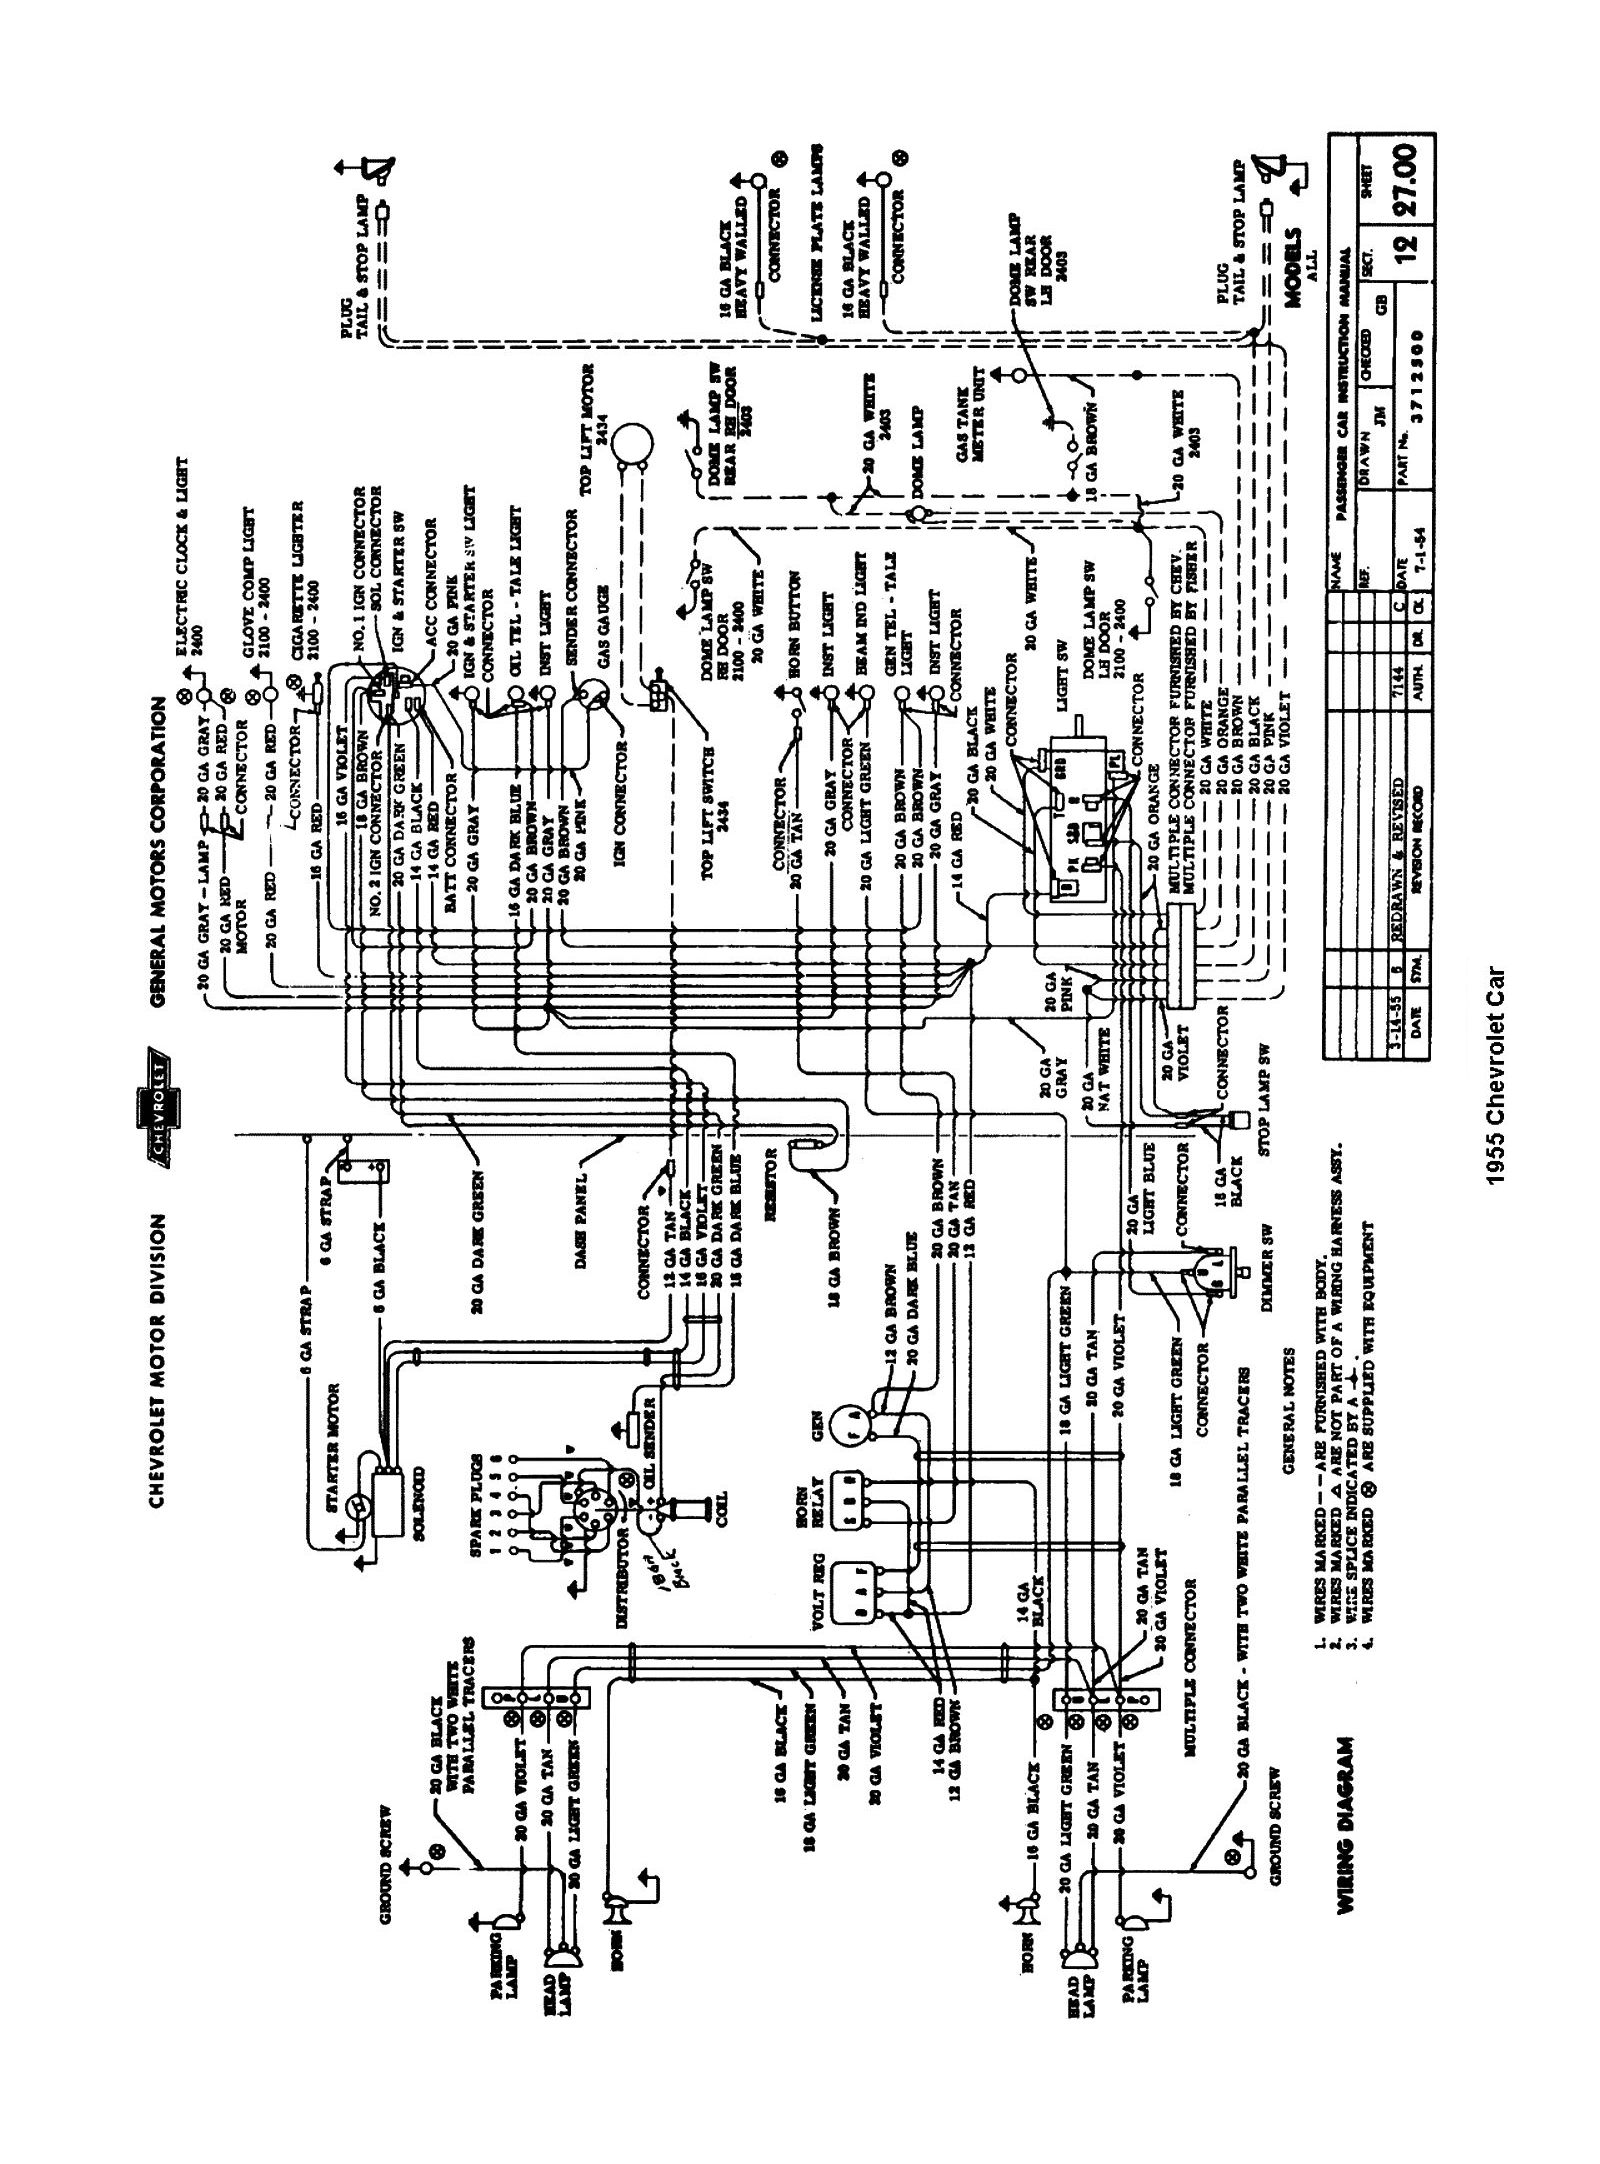 1955 chevy wiring diagram data wiring diagram 1995 Dodge Ram Wiring Diagram chevy wiring diagrams 1955 plymouth wiring diagram 1955 chevy wiring diagram